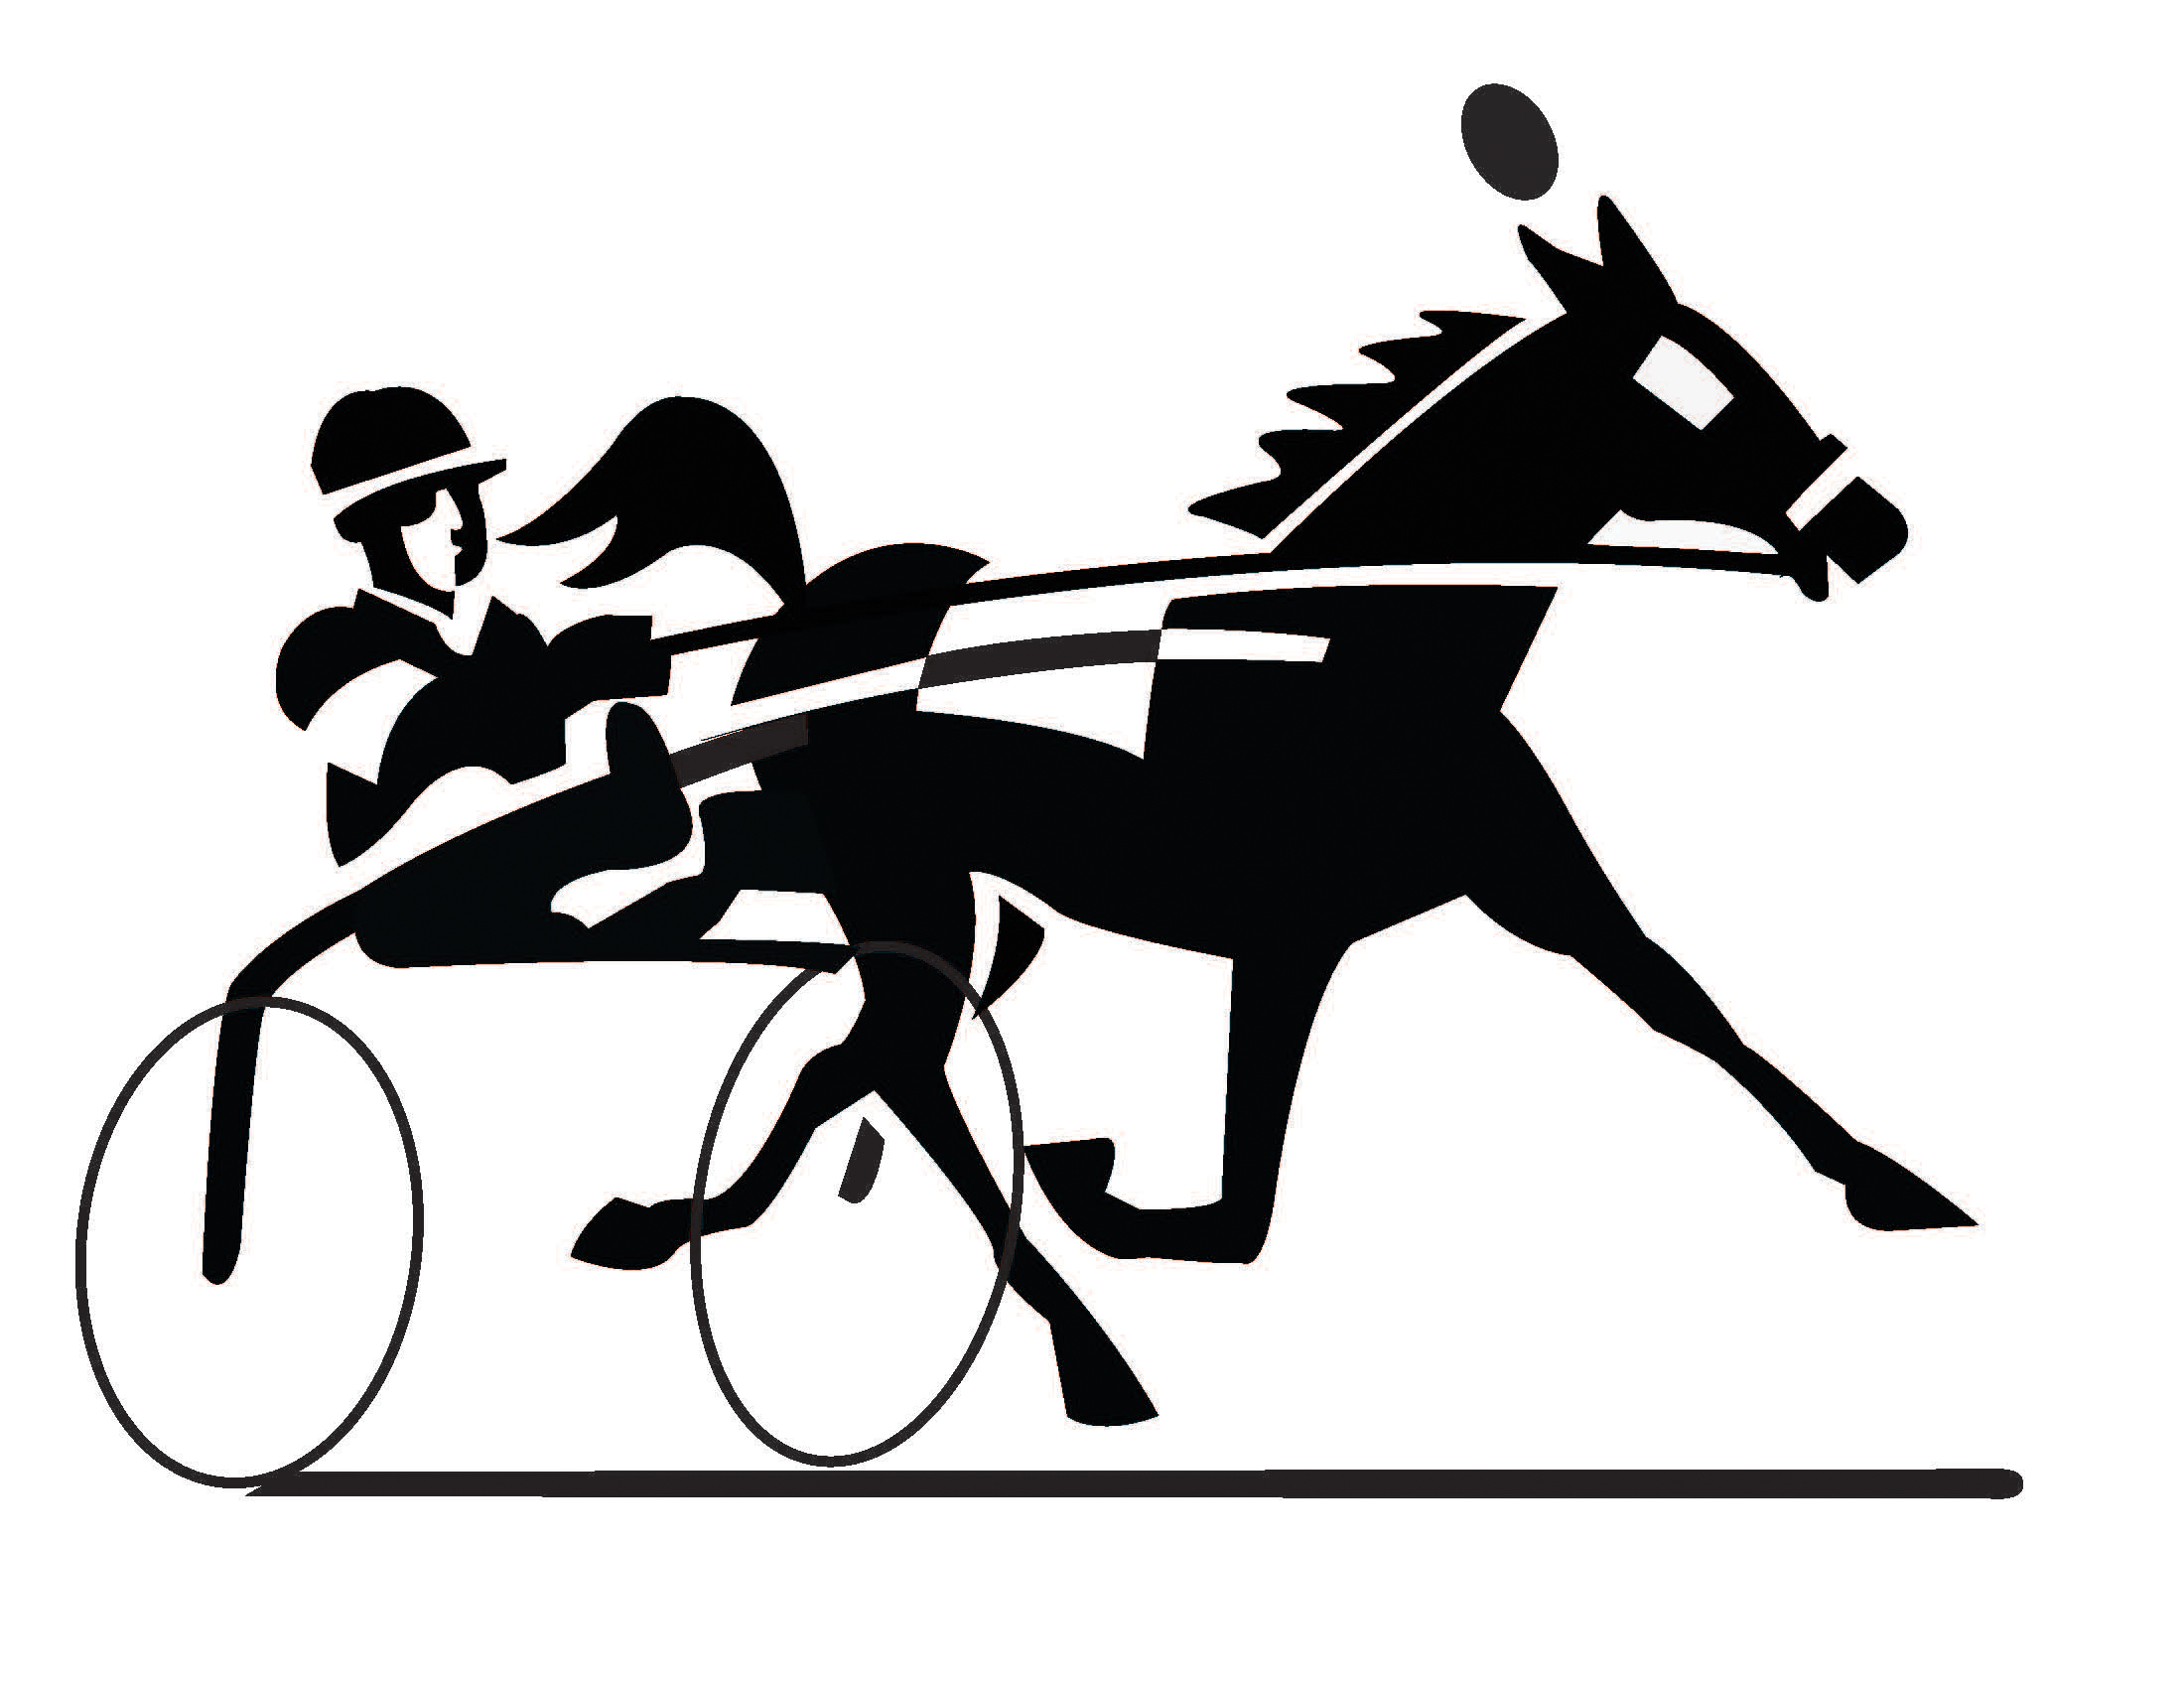 2200x1700 Horse Racing Clip Art Free Image